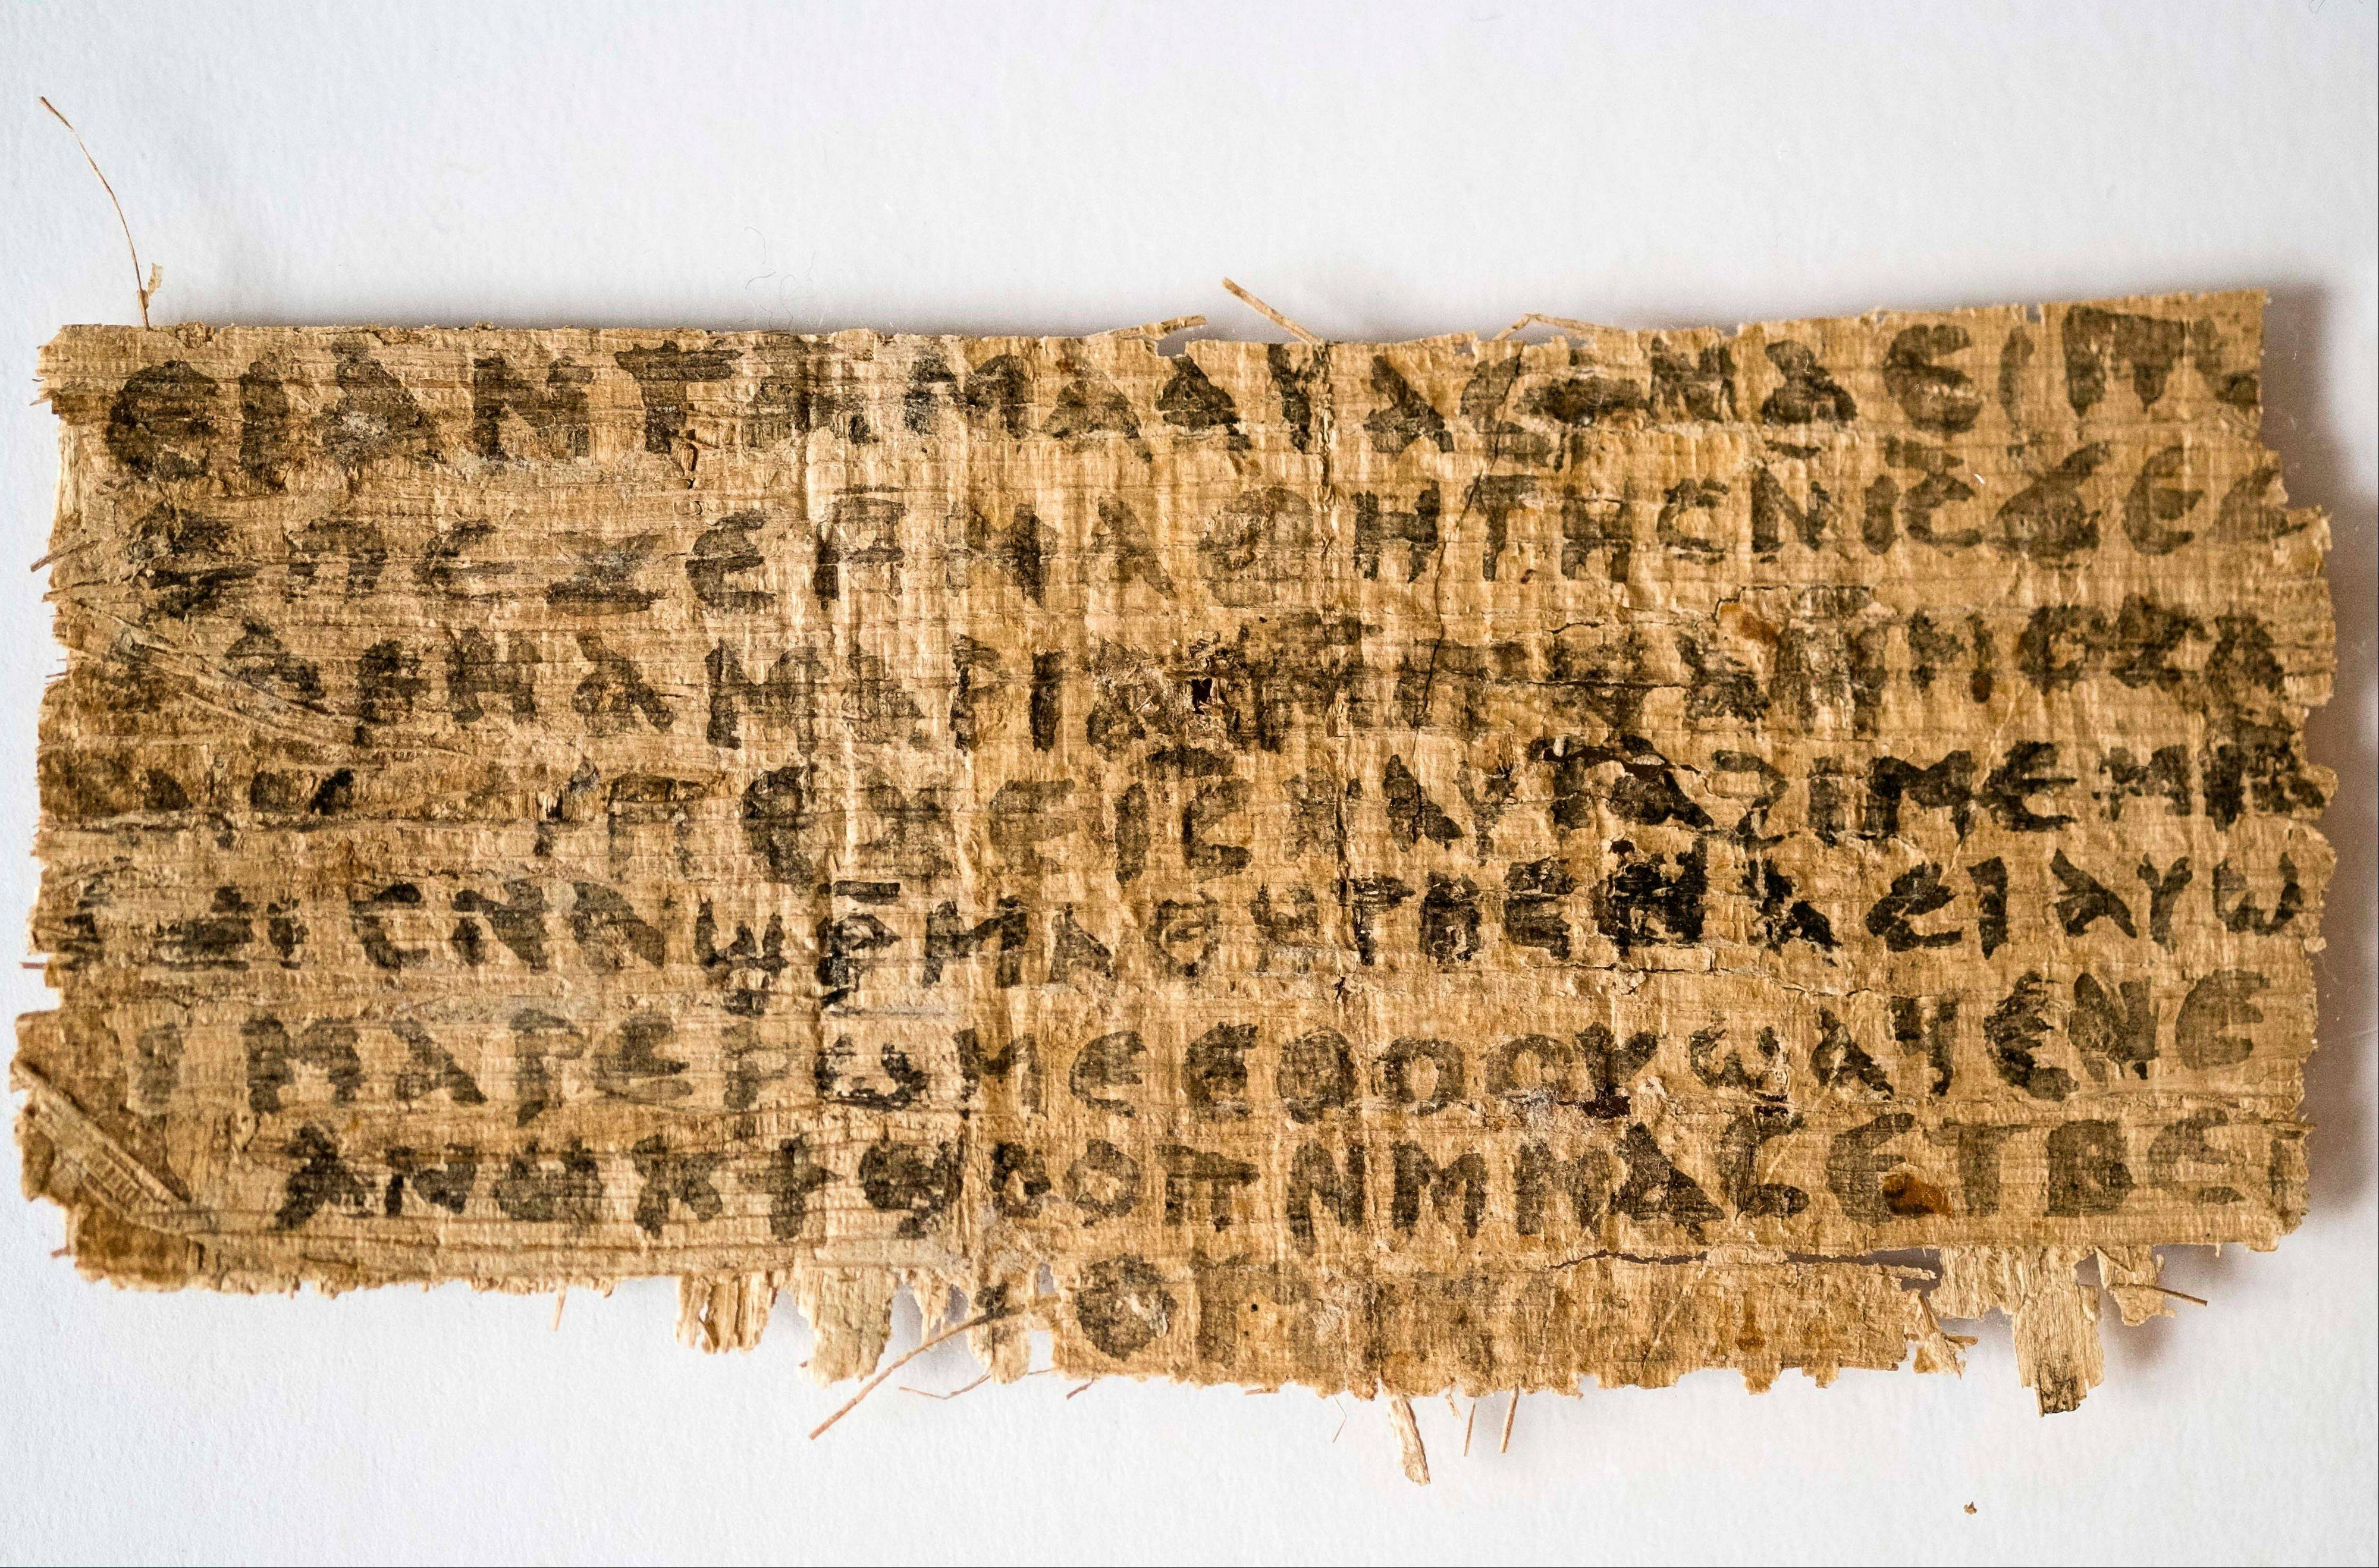 "This is a fourth-century fragment of papyrus that divinity professor Karen L. King says is the only existing ancient text that quotes Jesus explicitly referring to having a wife. King, an expert in the history of Christianity, says the text contains a dialogue in which Jesus refers to ""my wife,"" whom he identified as Mary."